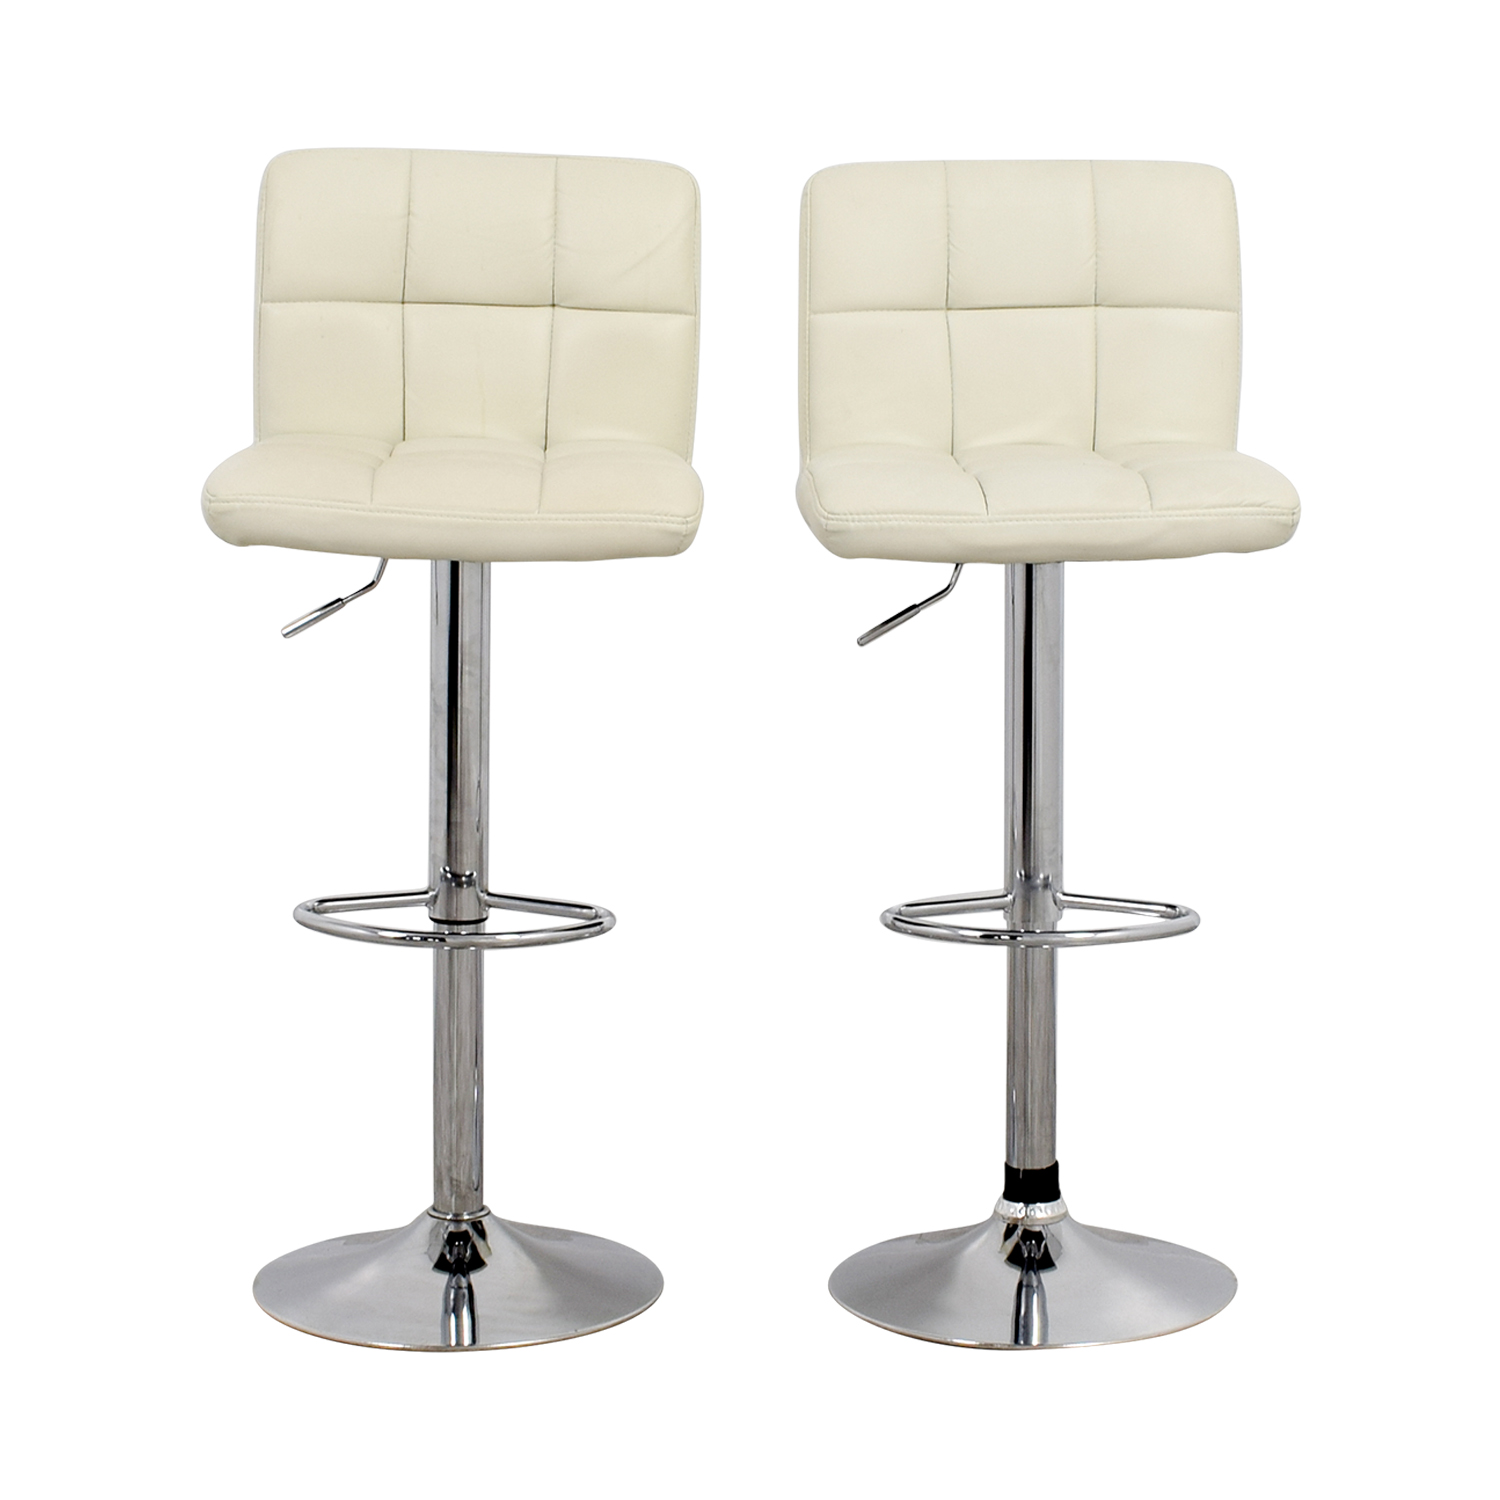 Creme and Chrome Tufted Bar Stools for sale